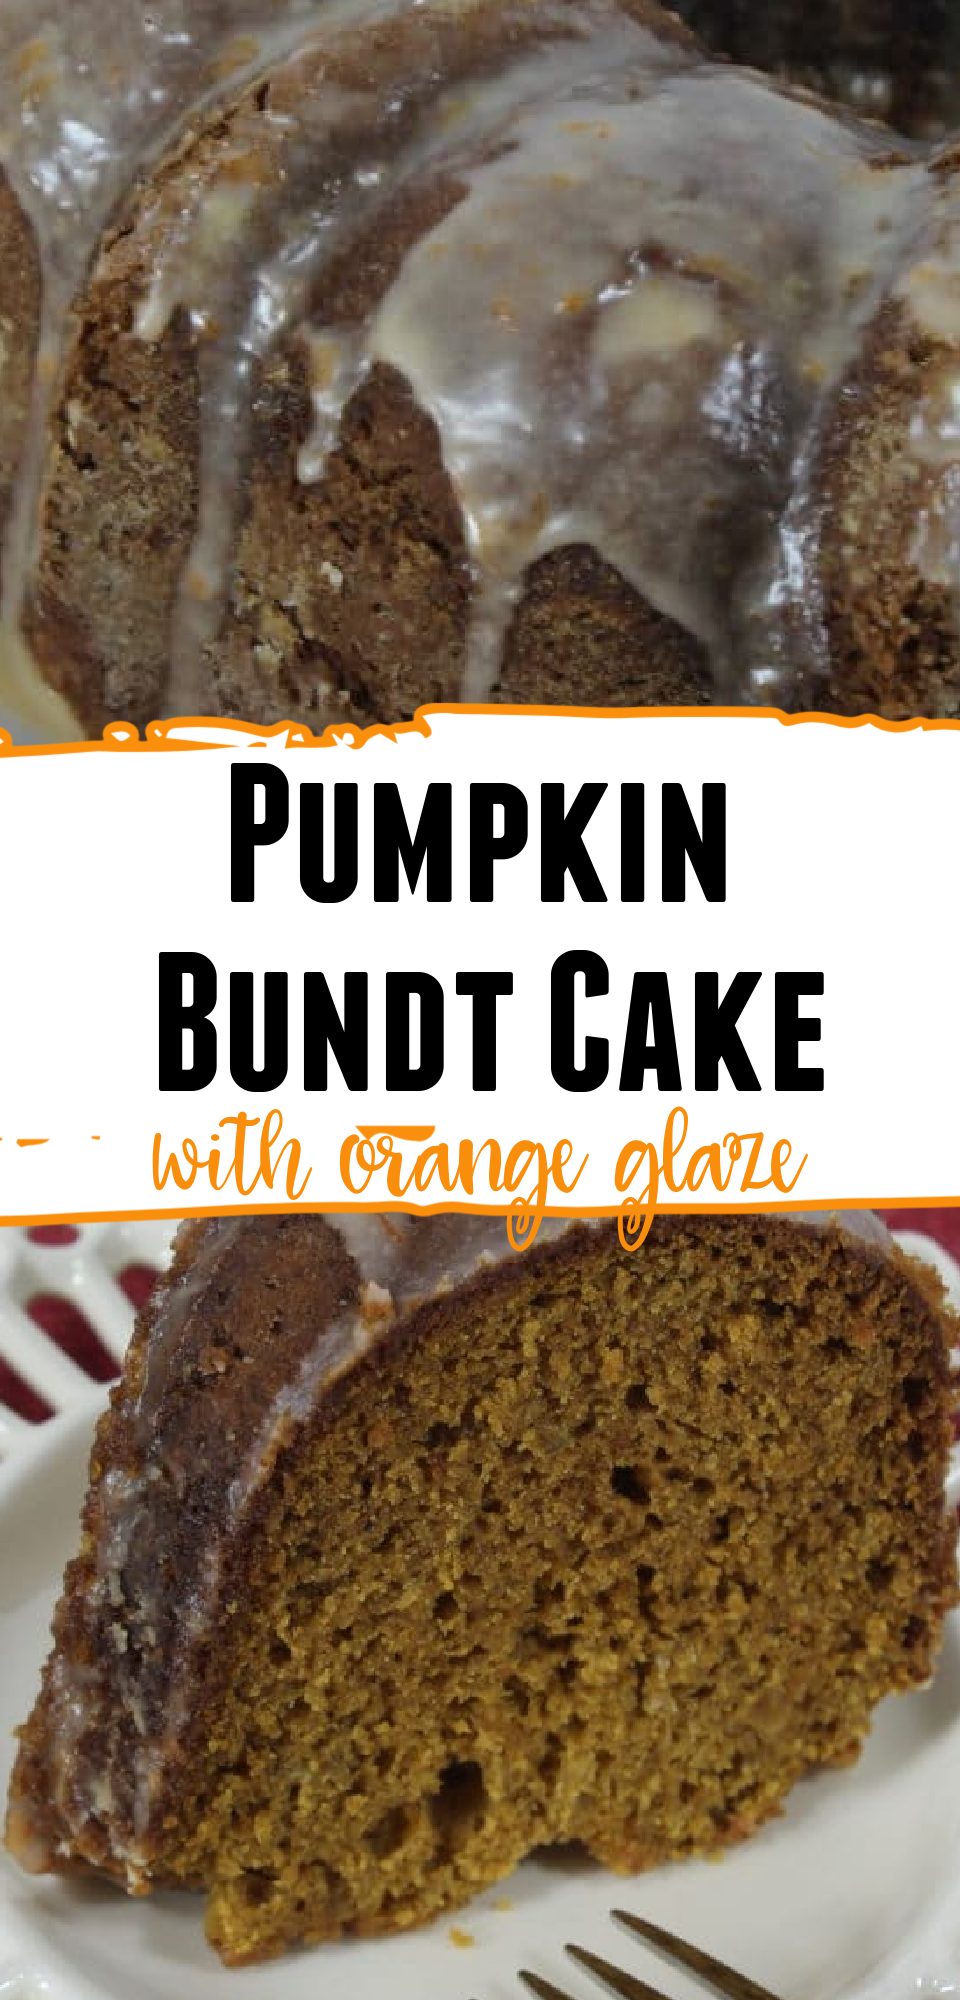 This easy pumpkin bundt cake recipe just screams fall to me. Put some orange glaze on the cake to make it the perfect fall dessert. Orange glazed pumpkin cake will satisfy your whole family. via @simplysidedishes89